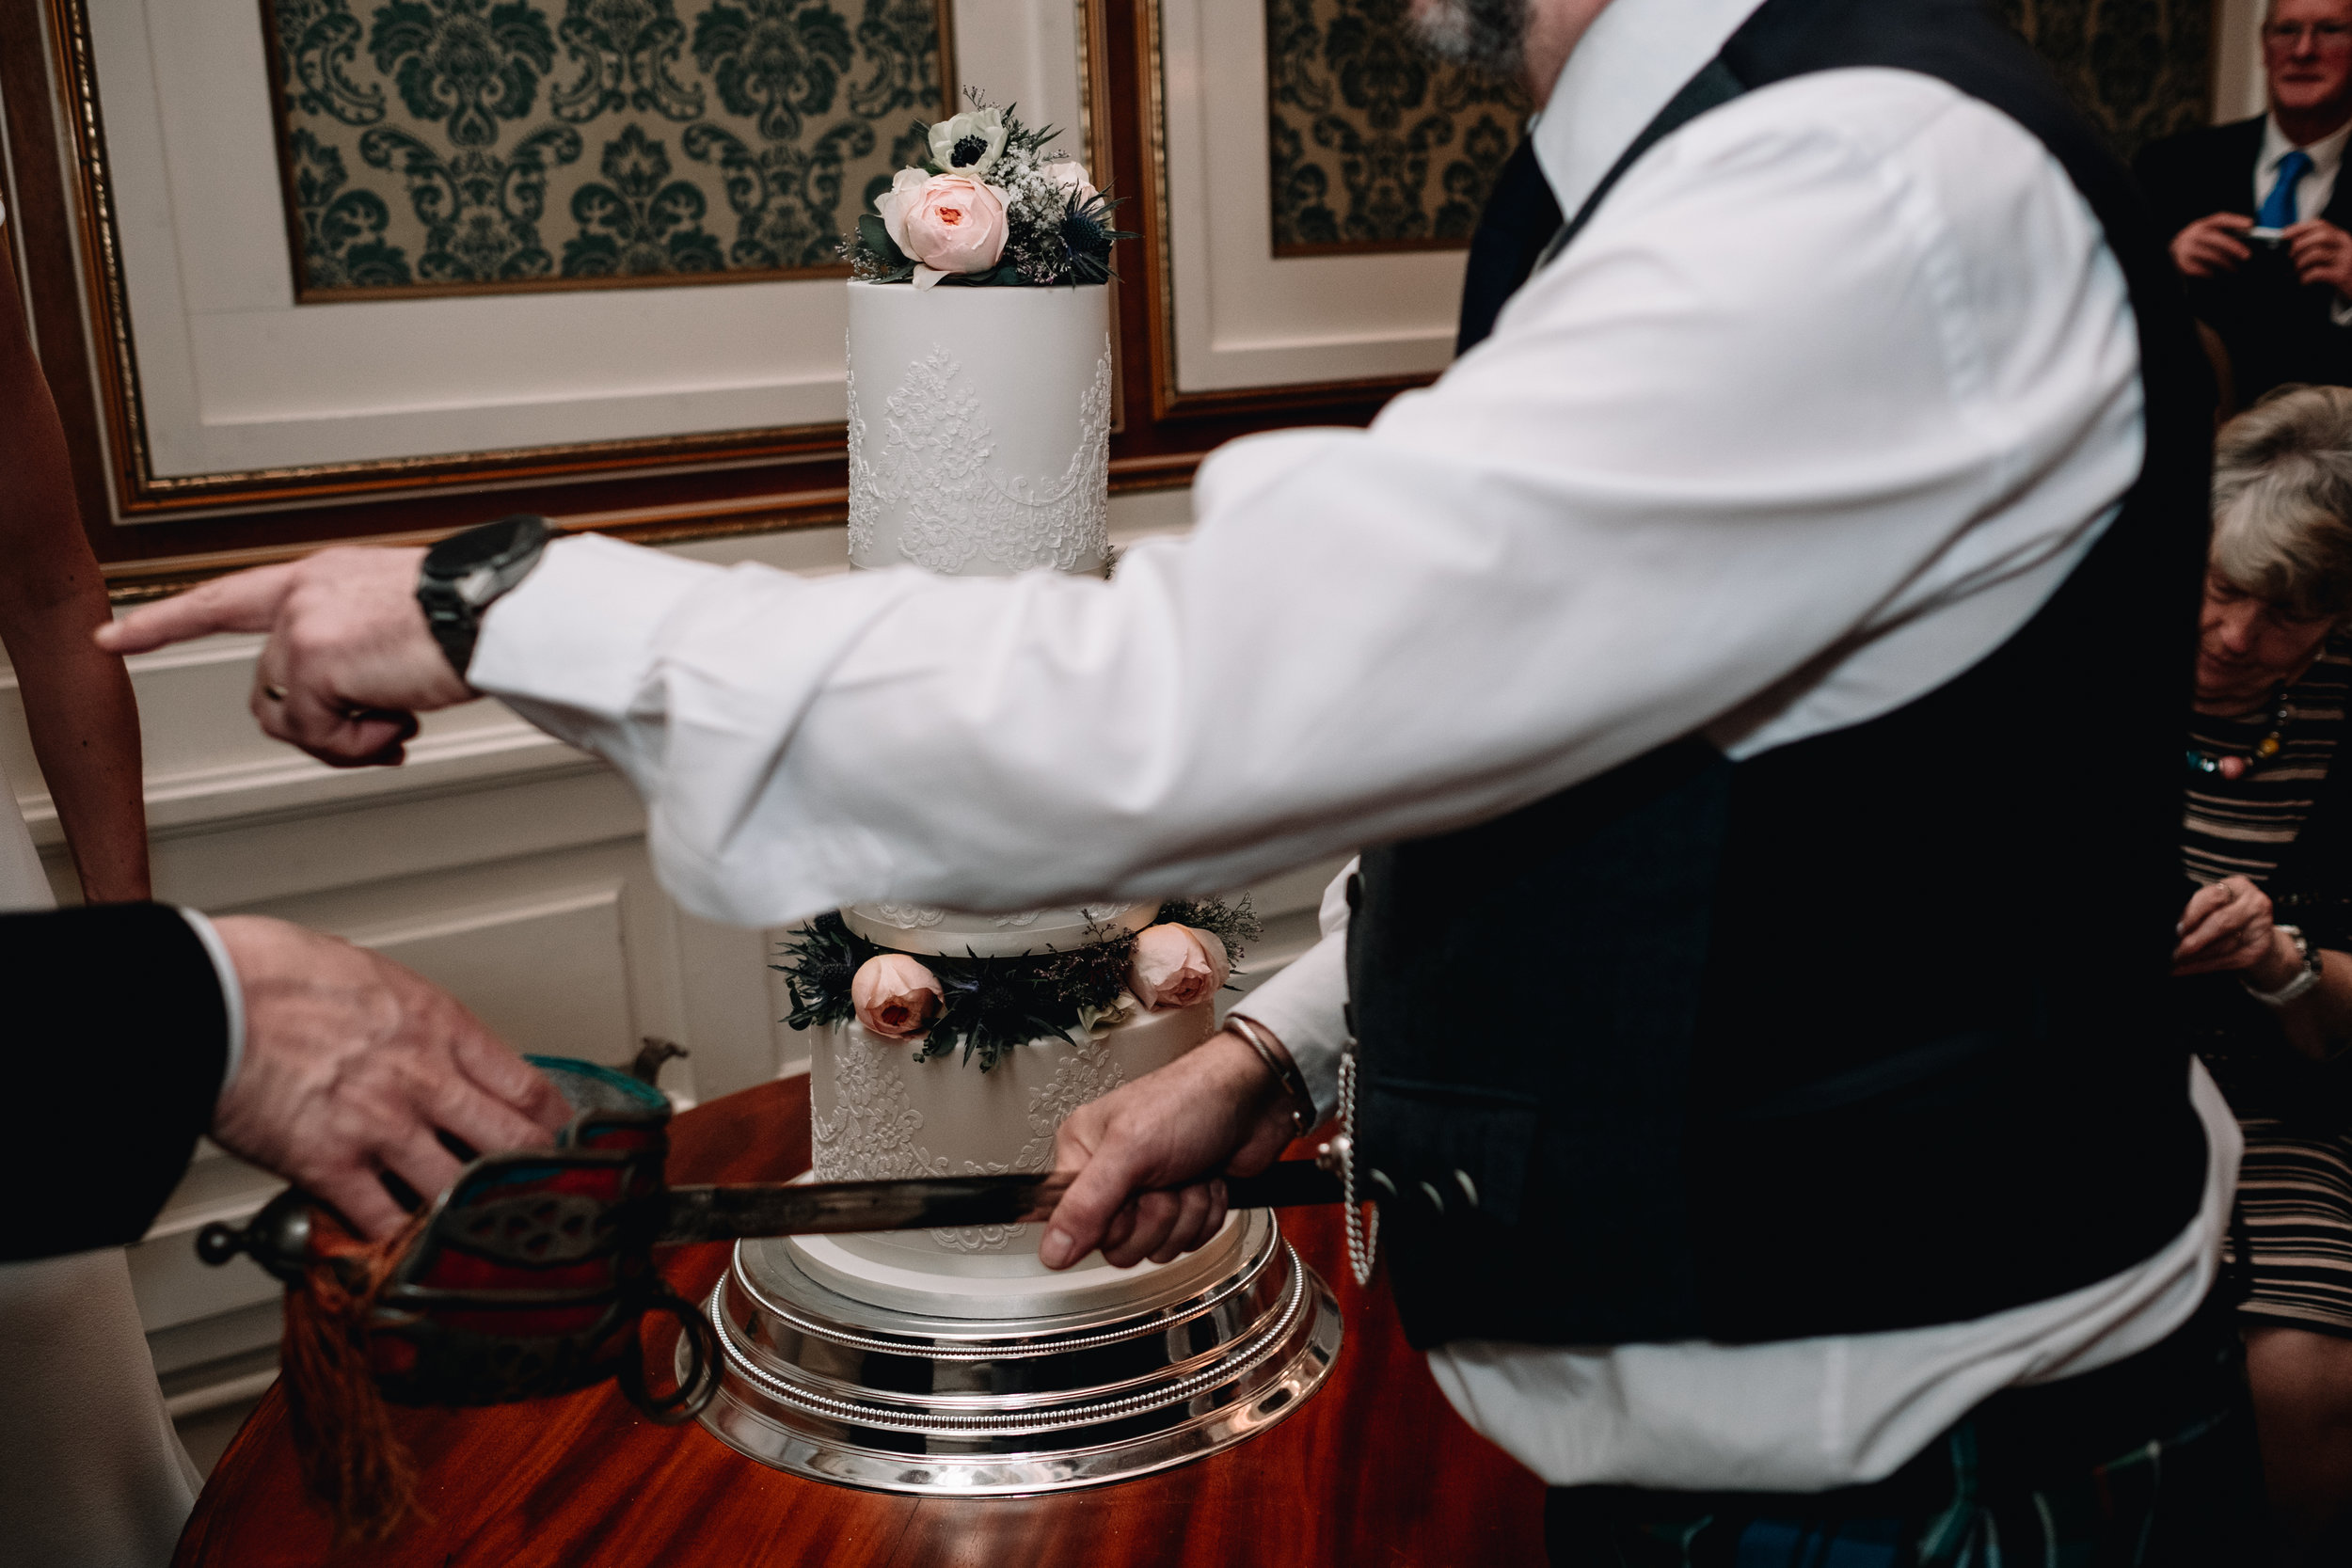 Knife being handed to groom for cake cutting